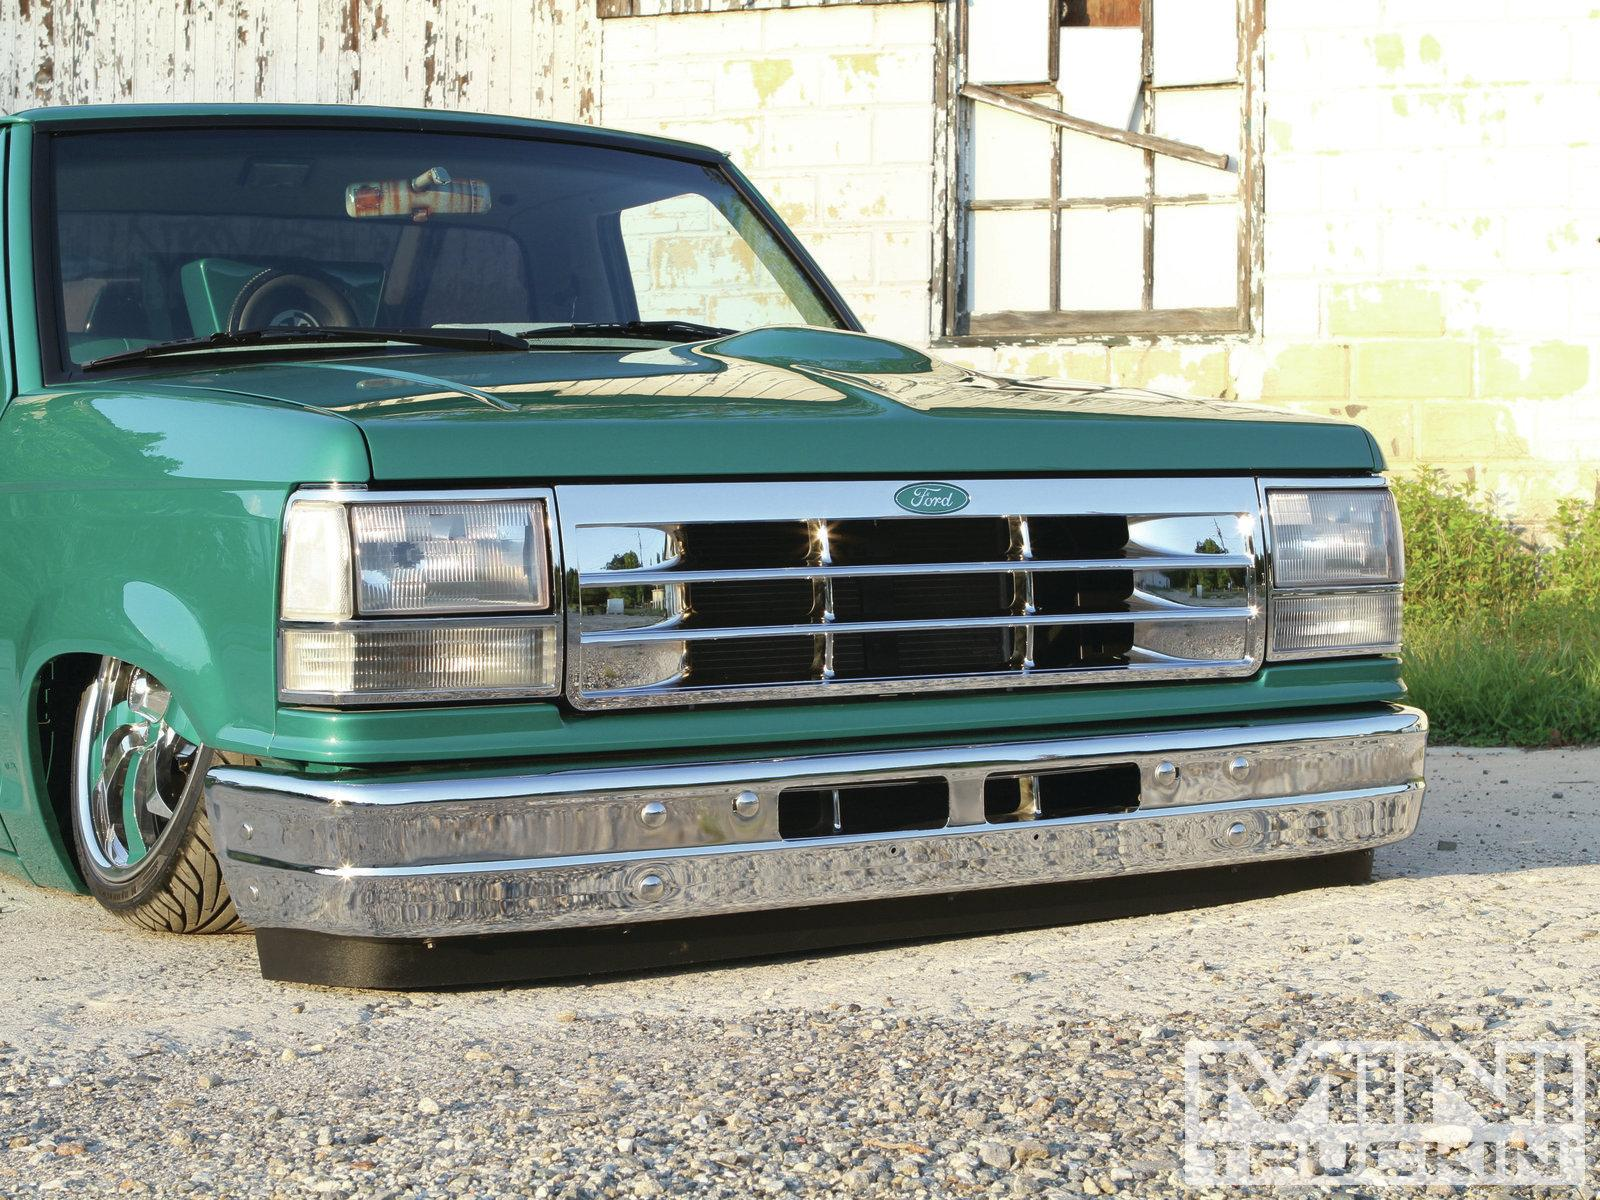 1992 Ford Ranger Parts Diagram - Trusted Wiring Diagram •